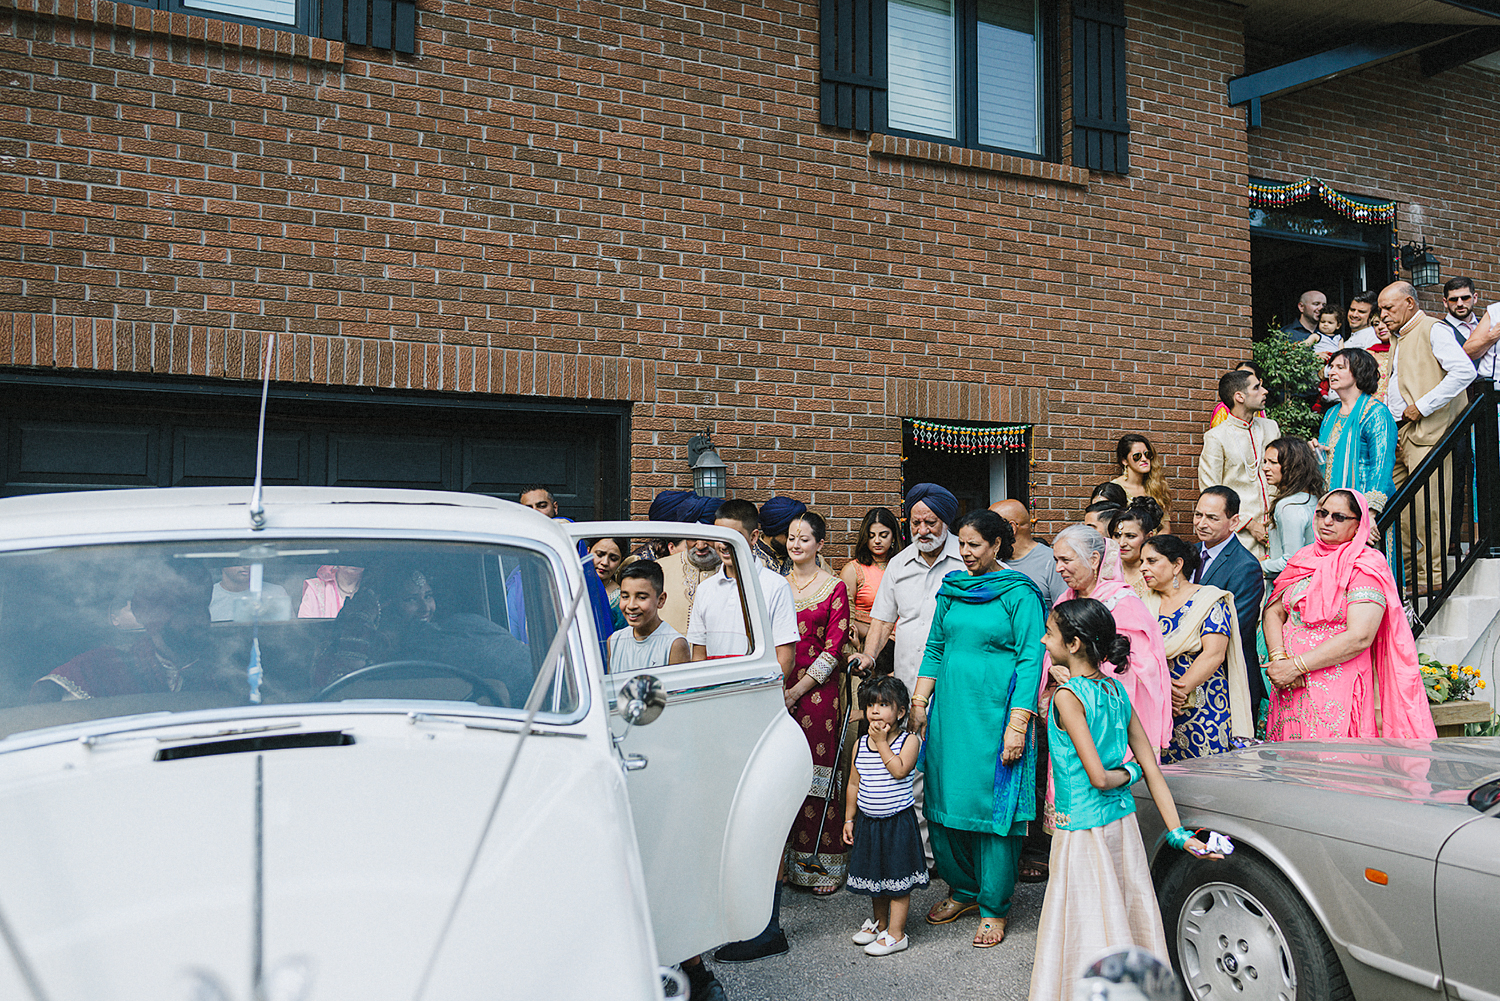 Toronto-Photojournalism-wedding-photographers-3B-Photography-Candid-Documentary-Film-Photography-Analog-Ontario-Hamilton-Port-Perry-Venue-Groom-Getting-Ready-putting-on-turban-sikh-ceremony-bride-entire-family-seeing-her-off.jpg